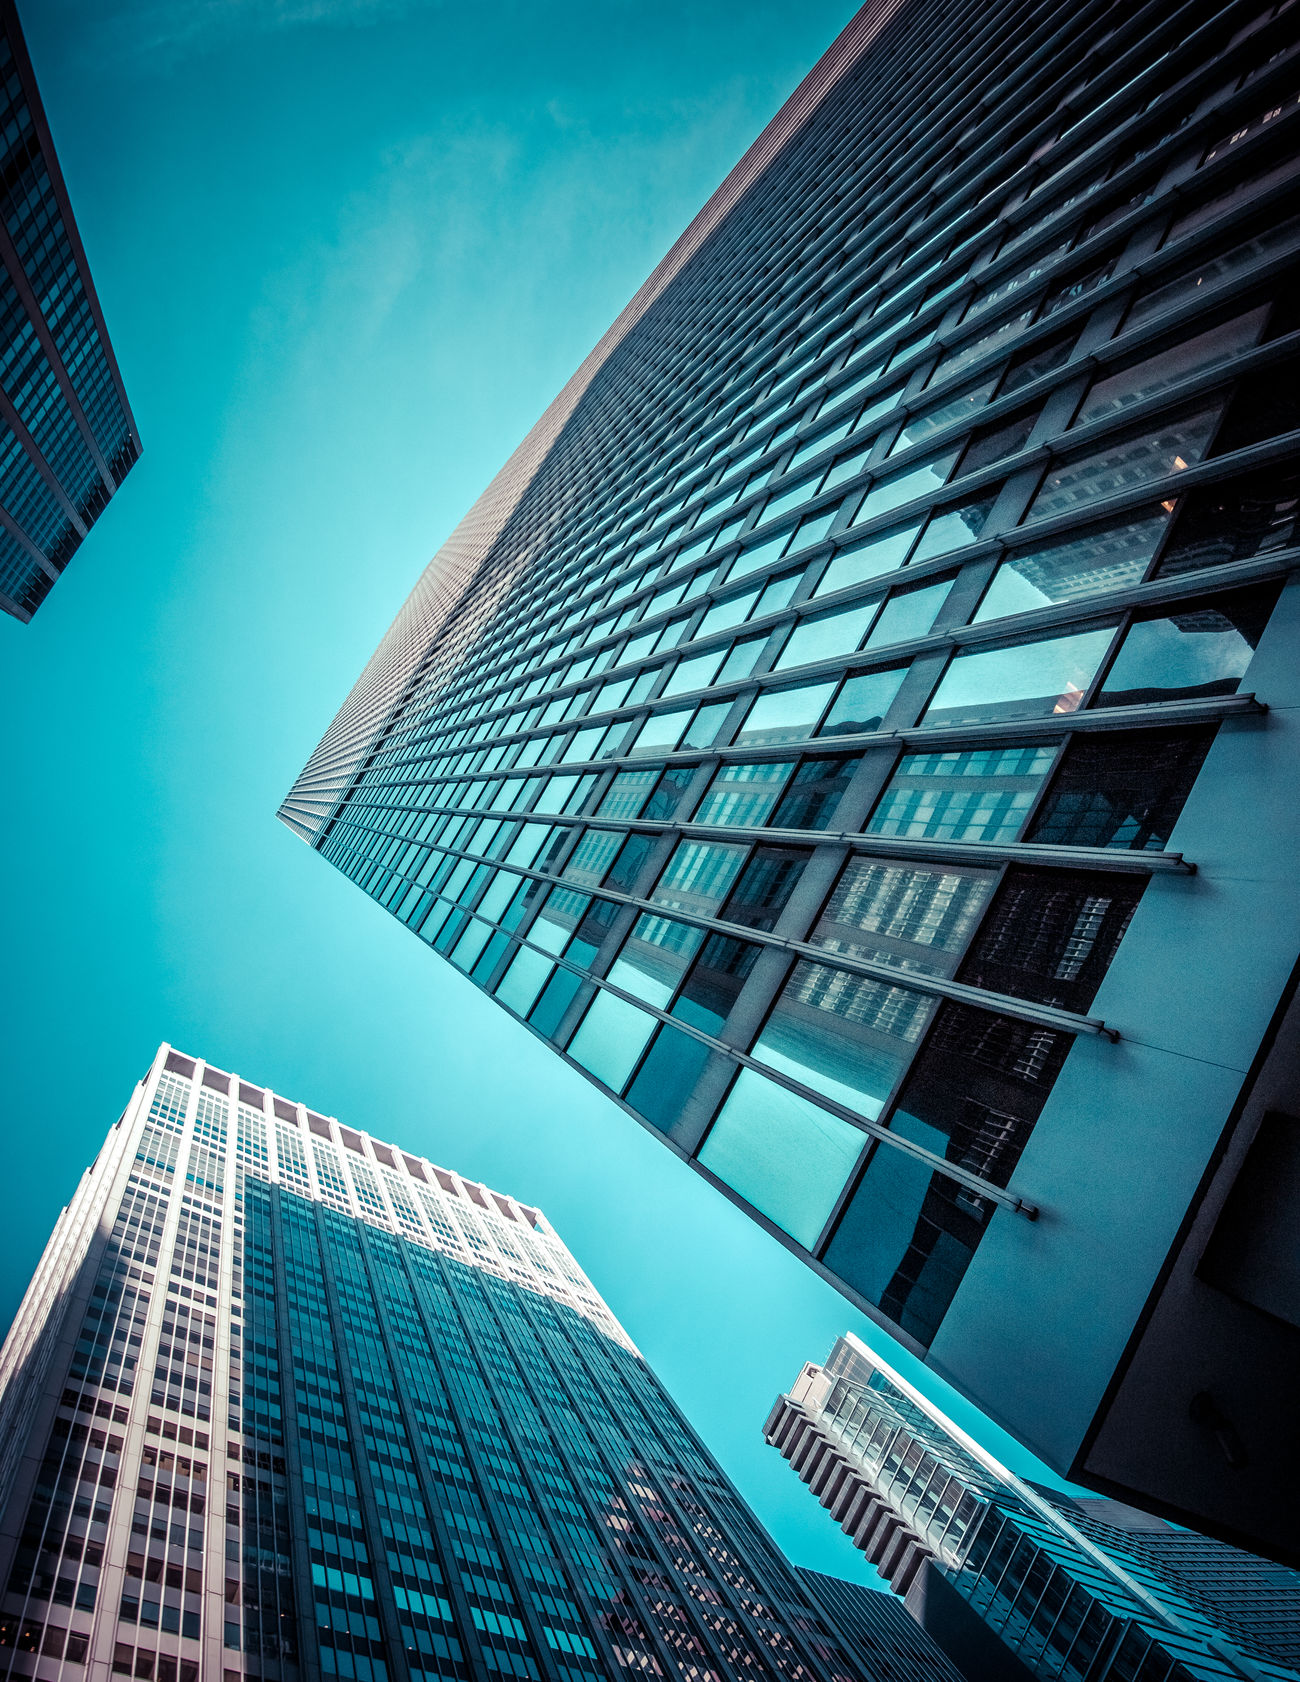 Diagonal Architecture Blue Building Exterior Built Structure City Day Growth Low Angle View Modern No People Outdoors Reflection Sky Skyscraper Tall The Architect - 2017 EyeEm Awards Tower Window